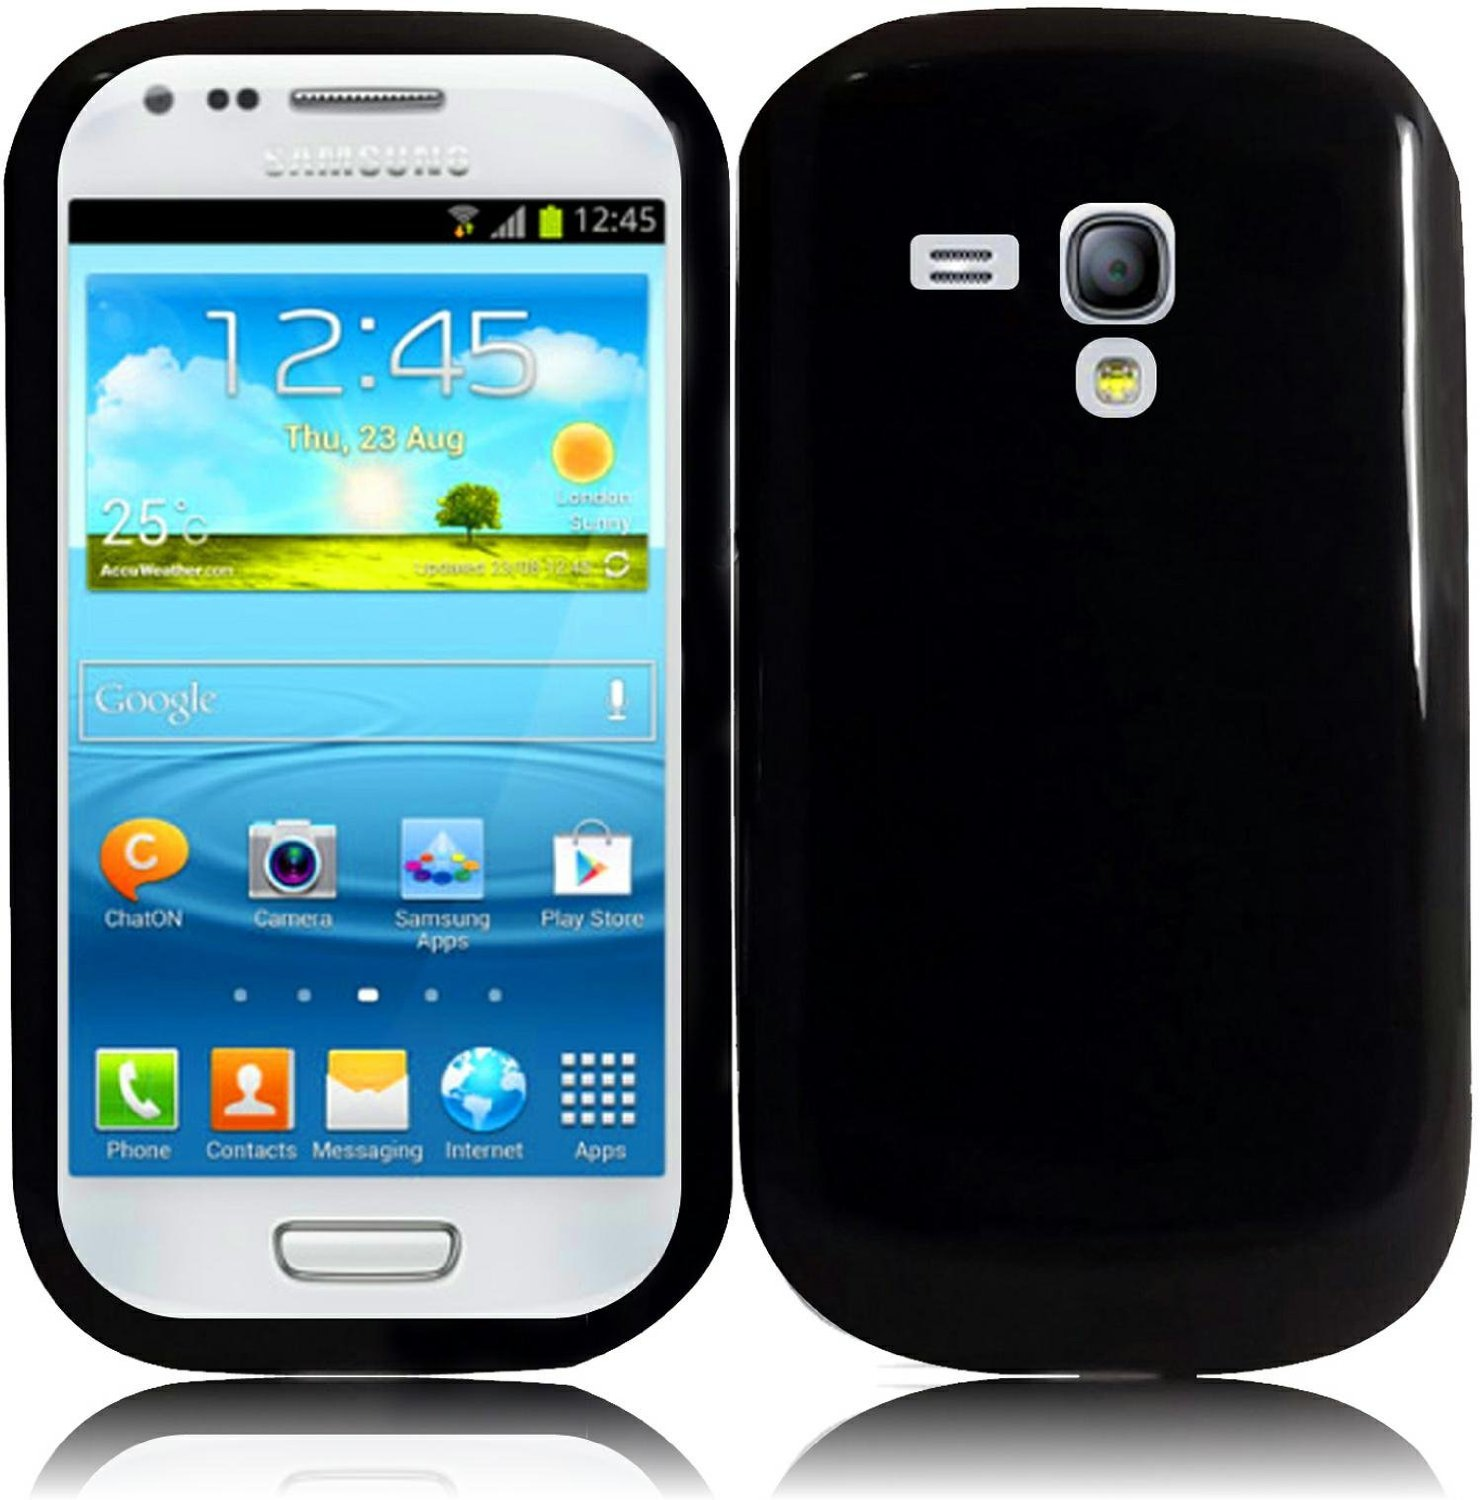 Samsung galaxy s3 mini i8190 power button ways - Amazon Com For Samsung Galaxy S3 Mini I8190 Tpu Cover Case Black Accessory Cell Phones Accessories